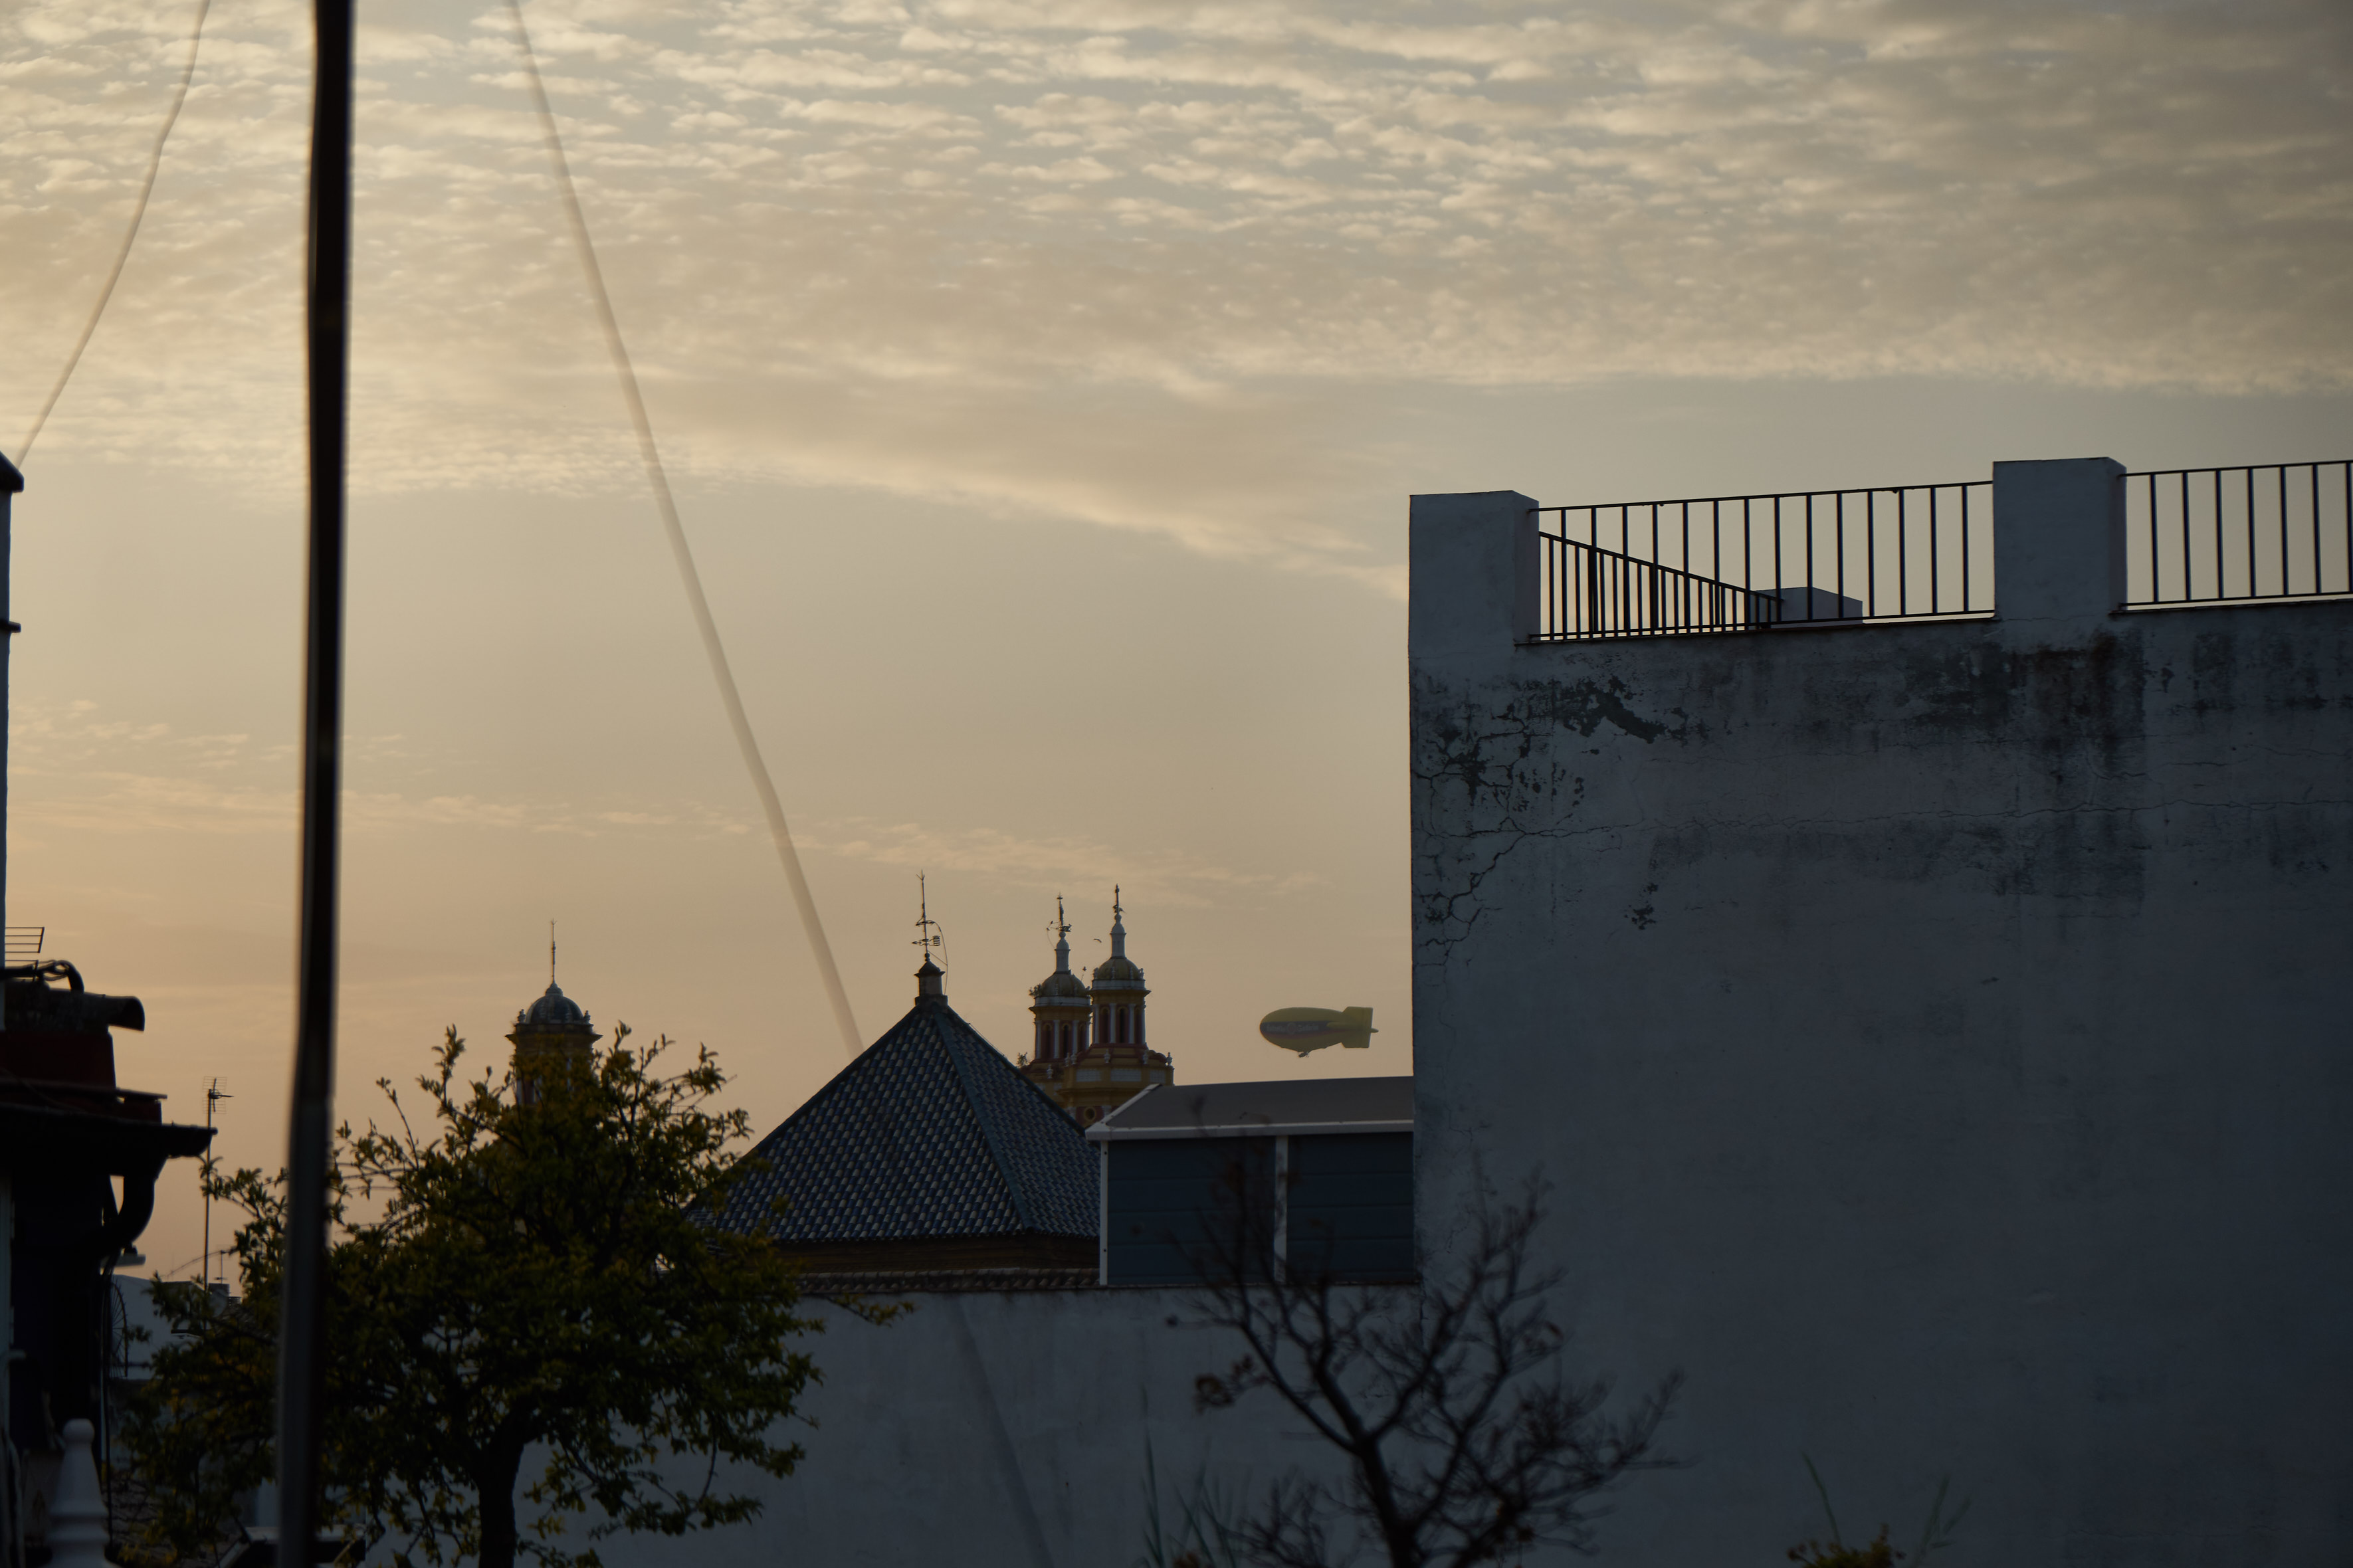 a zeppelin, as seen from our hostel